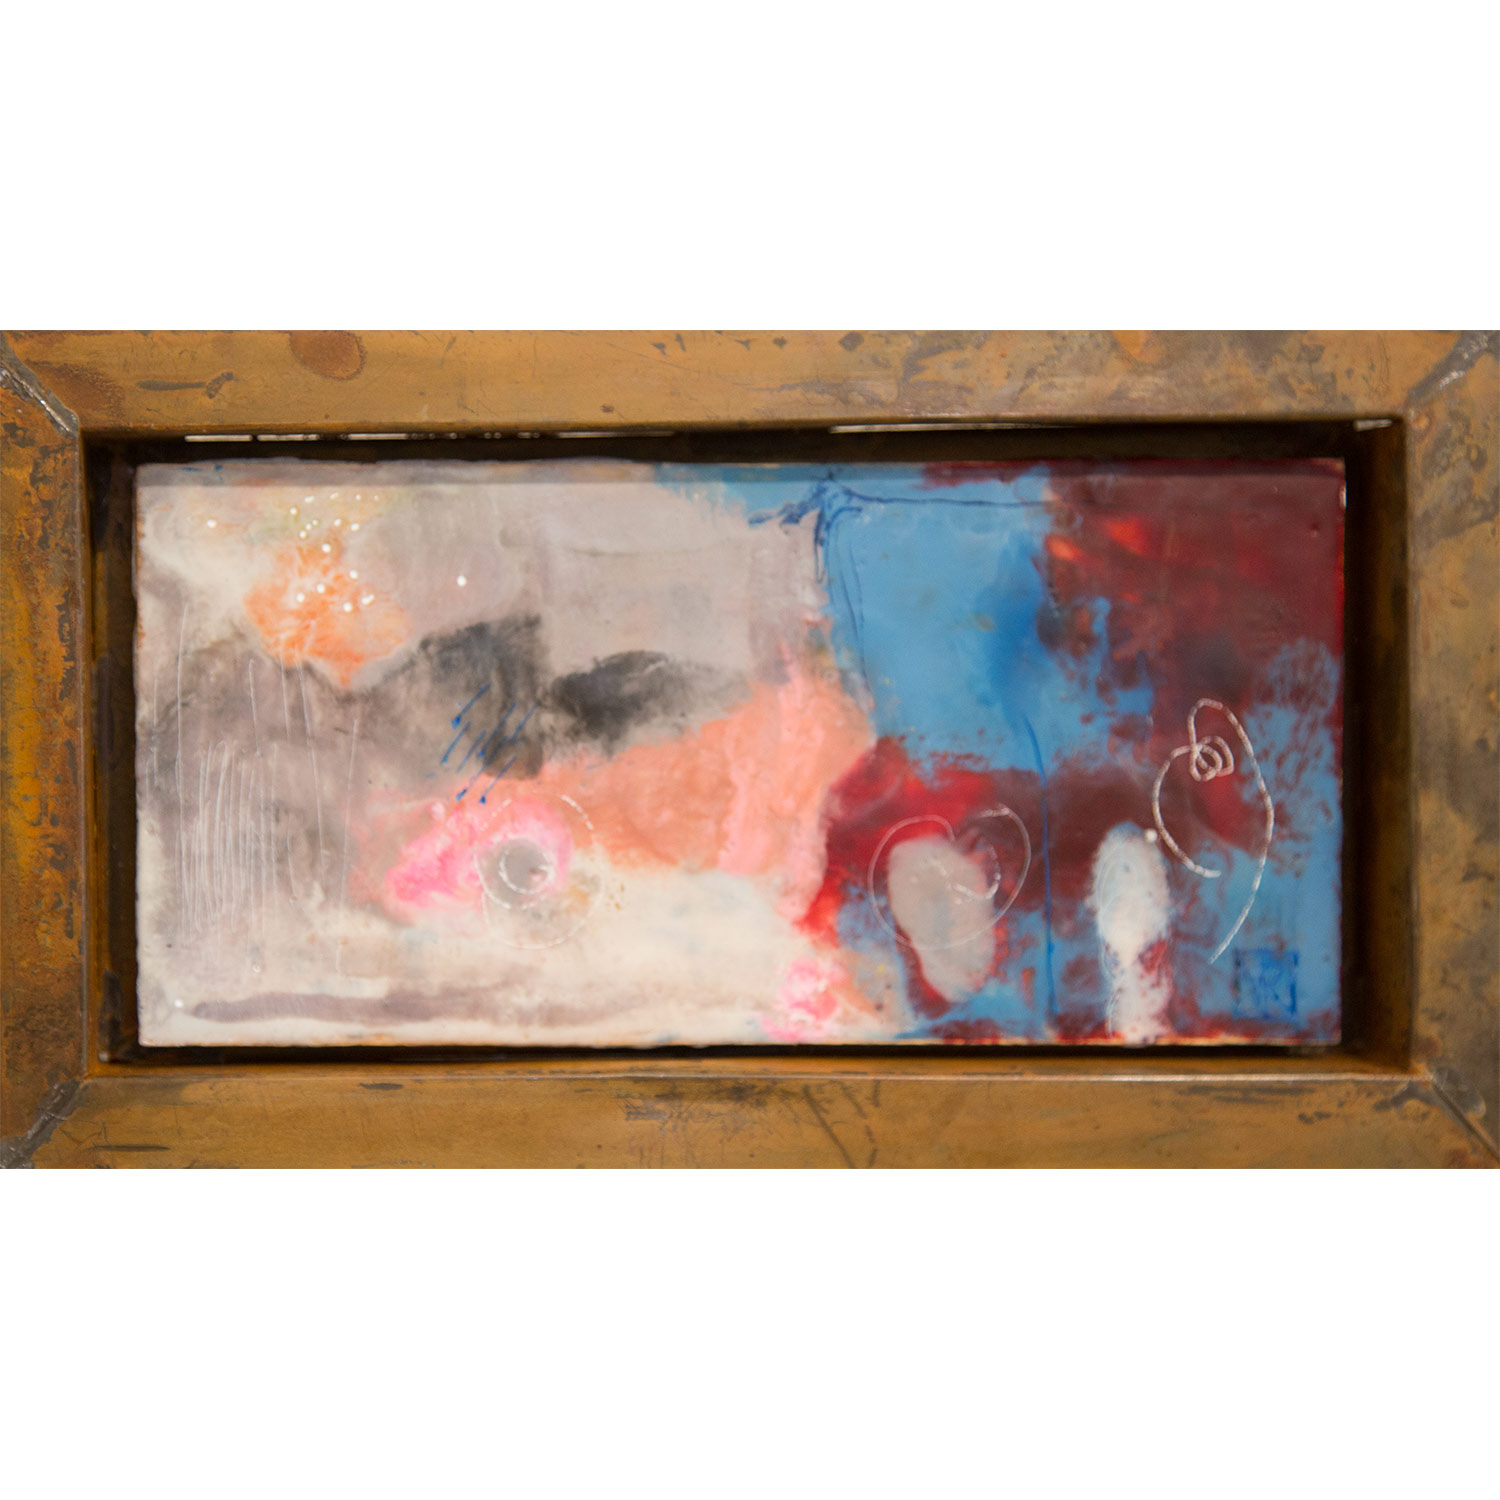 And She Danced in the Rain  Encaustic on panel in rusted Mexican frame, 15 x 28cm   Enquire